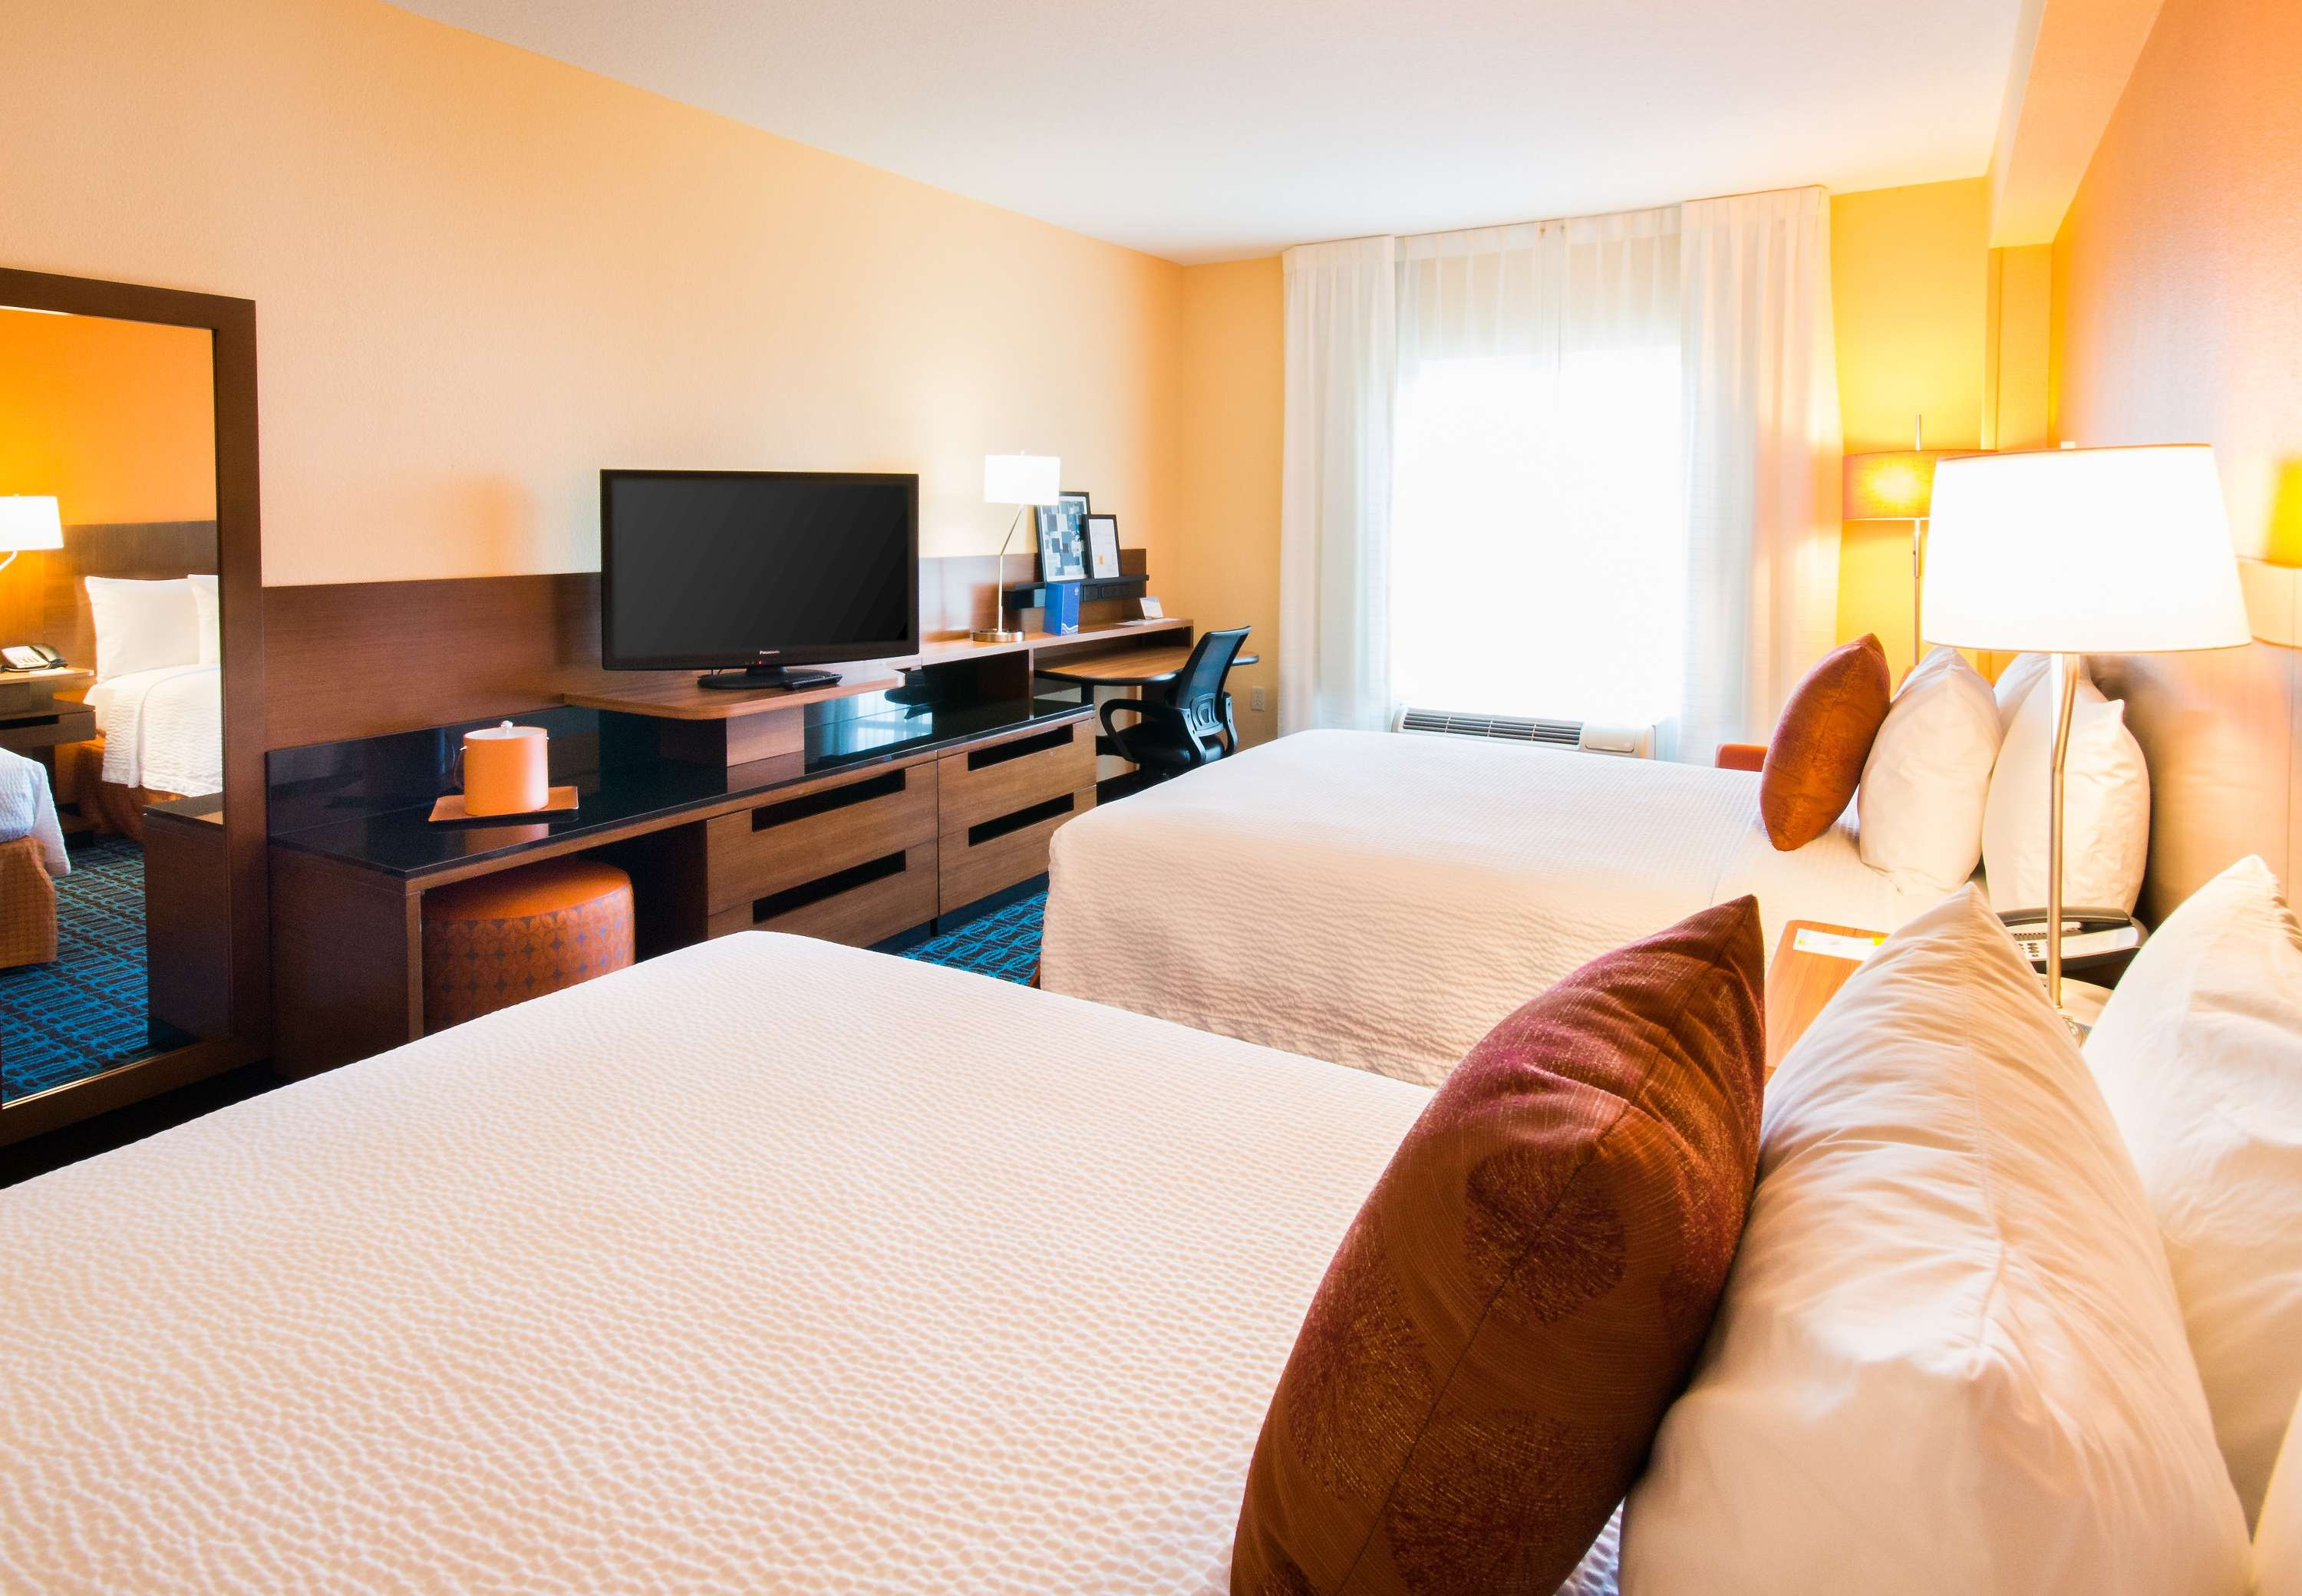 Fairfield Inn & Suites by Marriott Orlando International Drive/Convention Center image 12